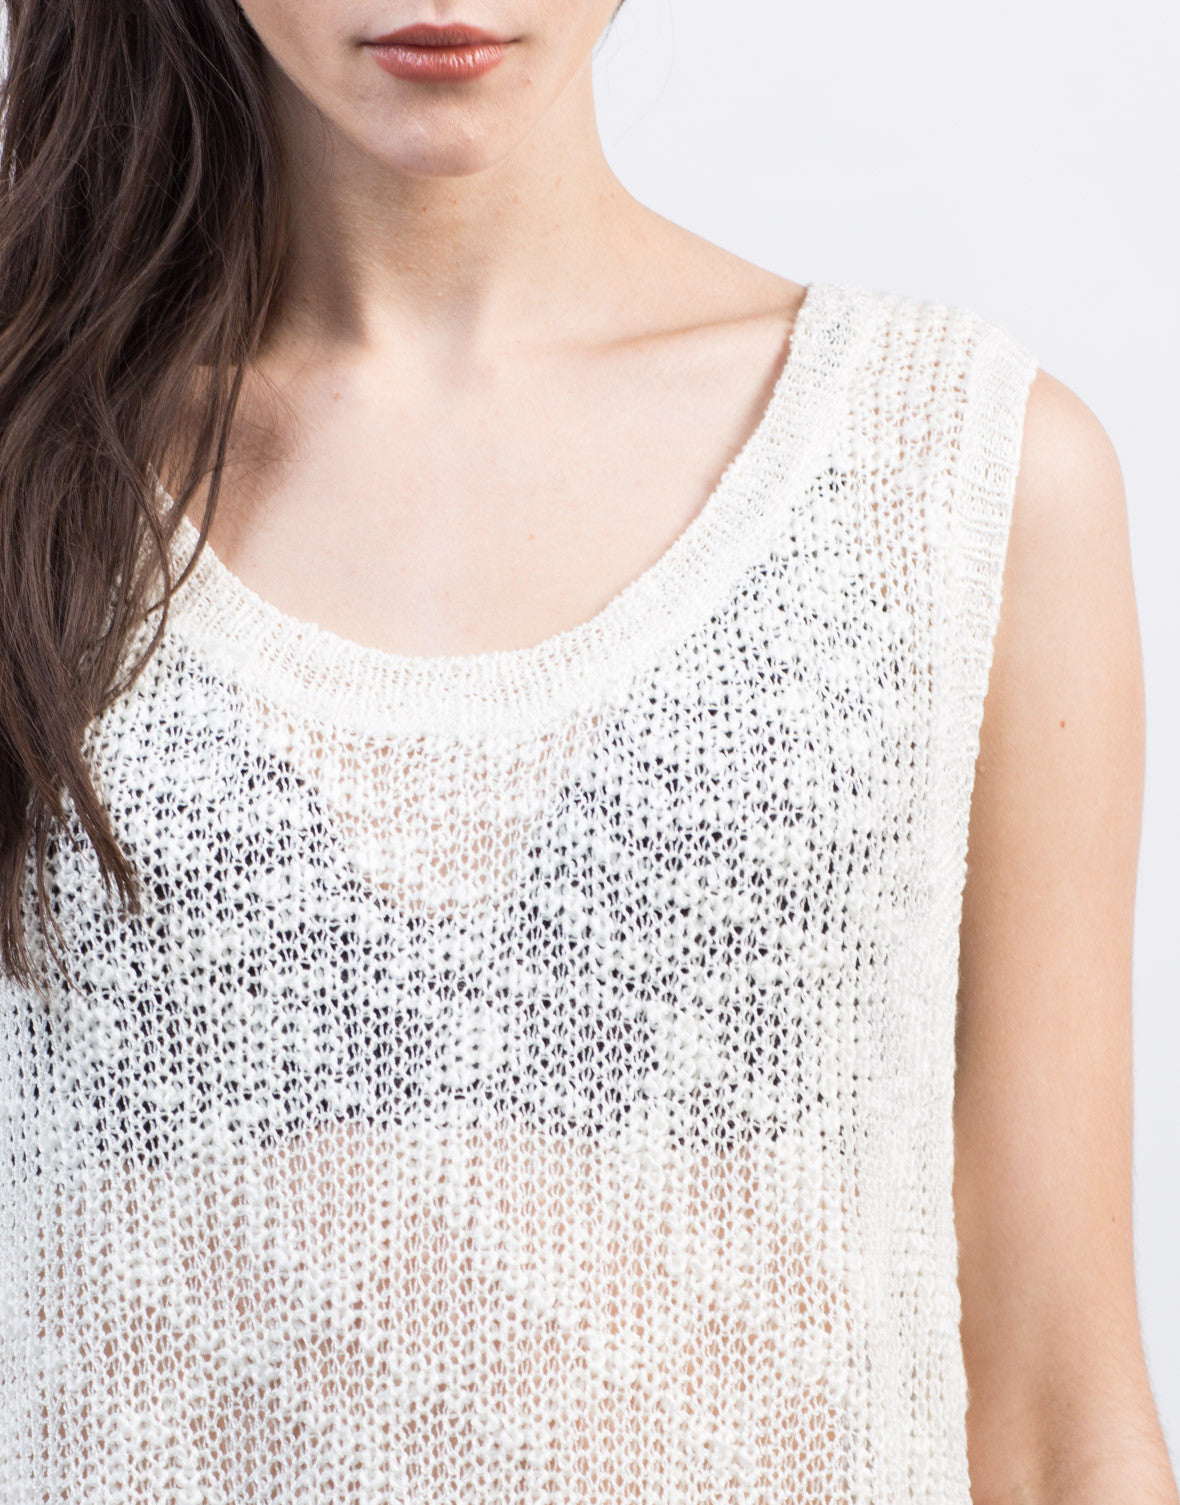 Detail of Knitted Sweater Tank